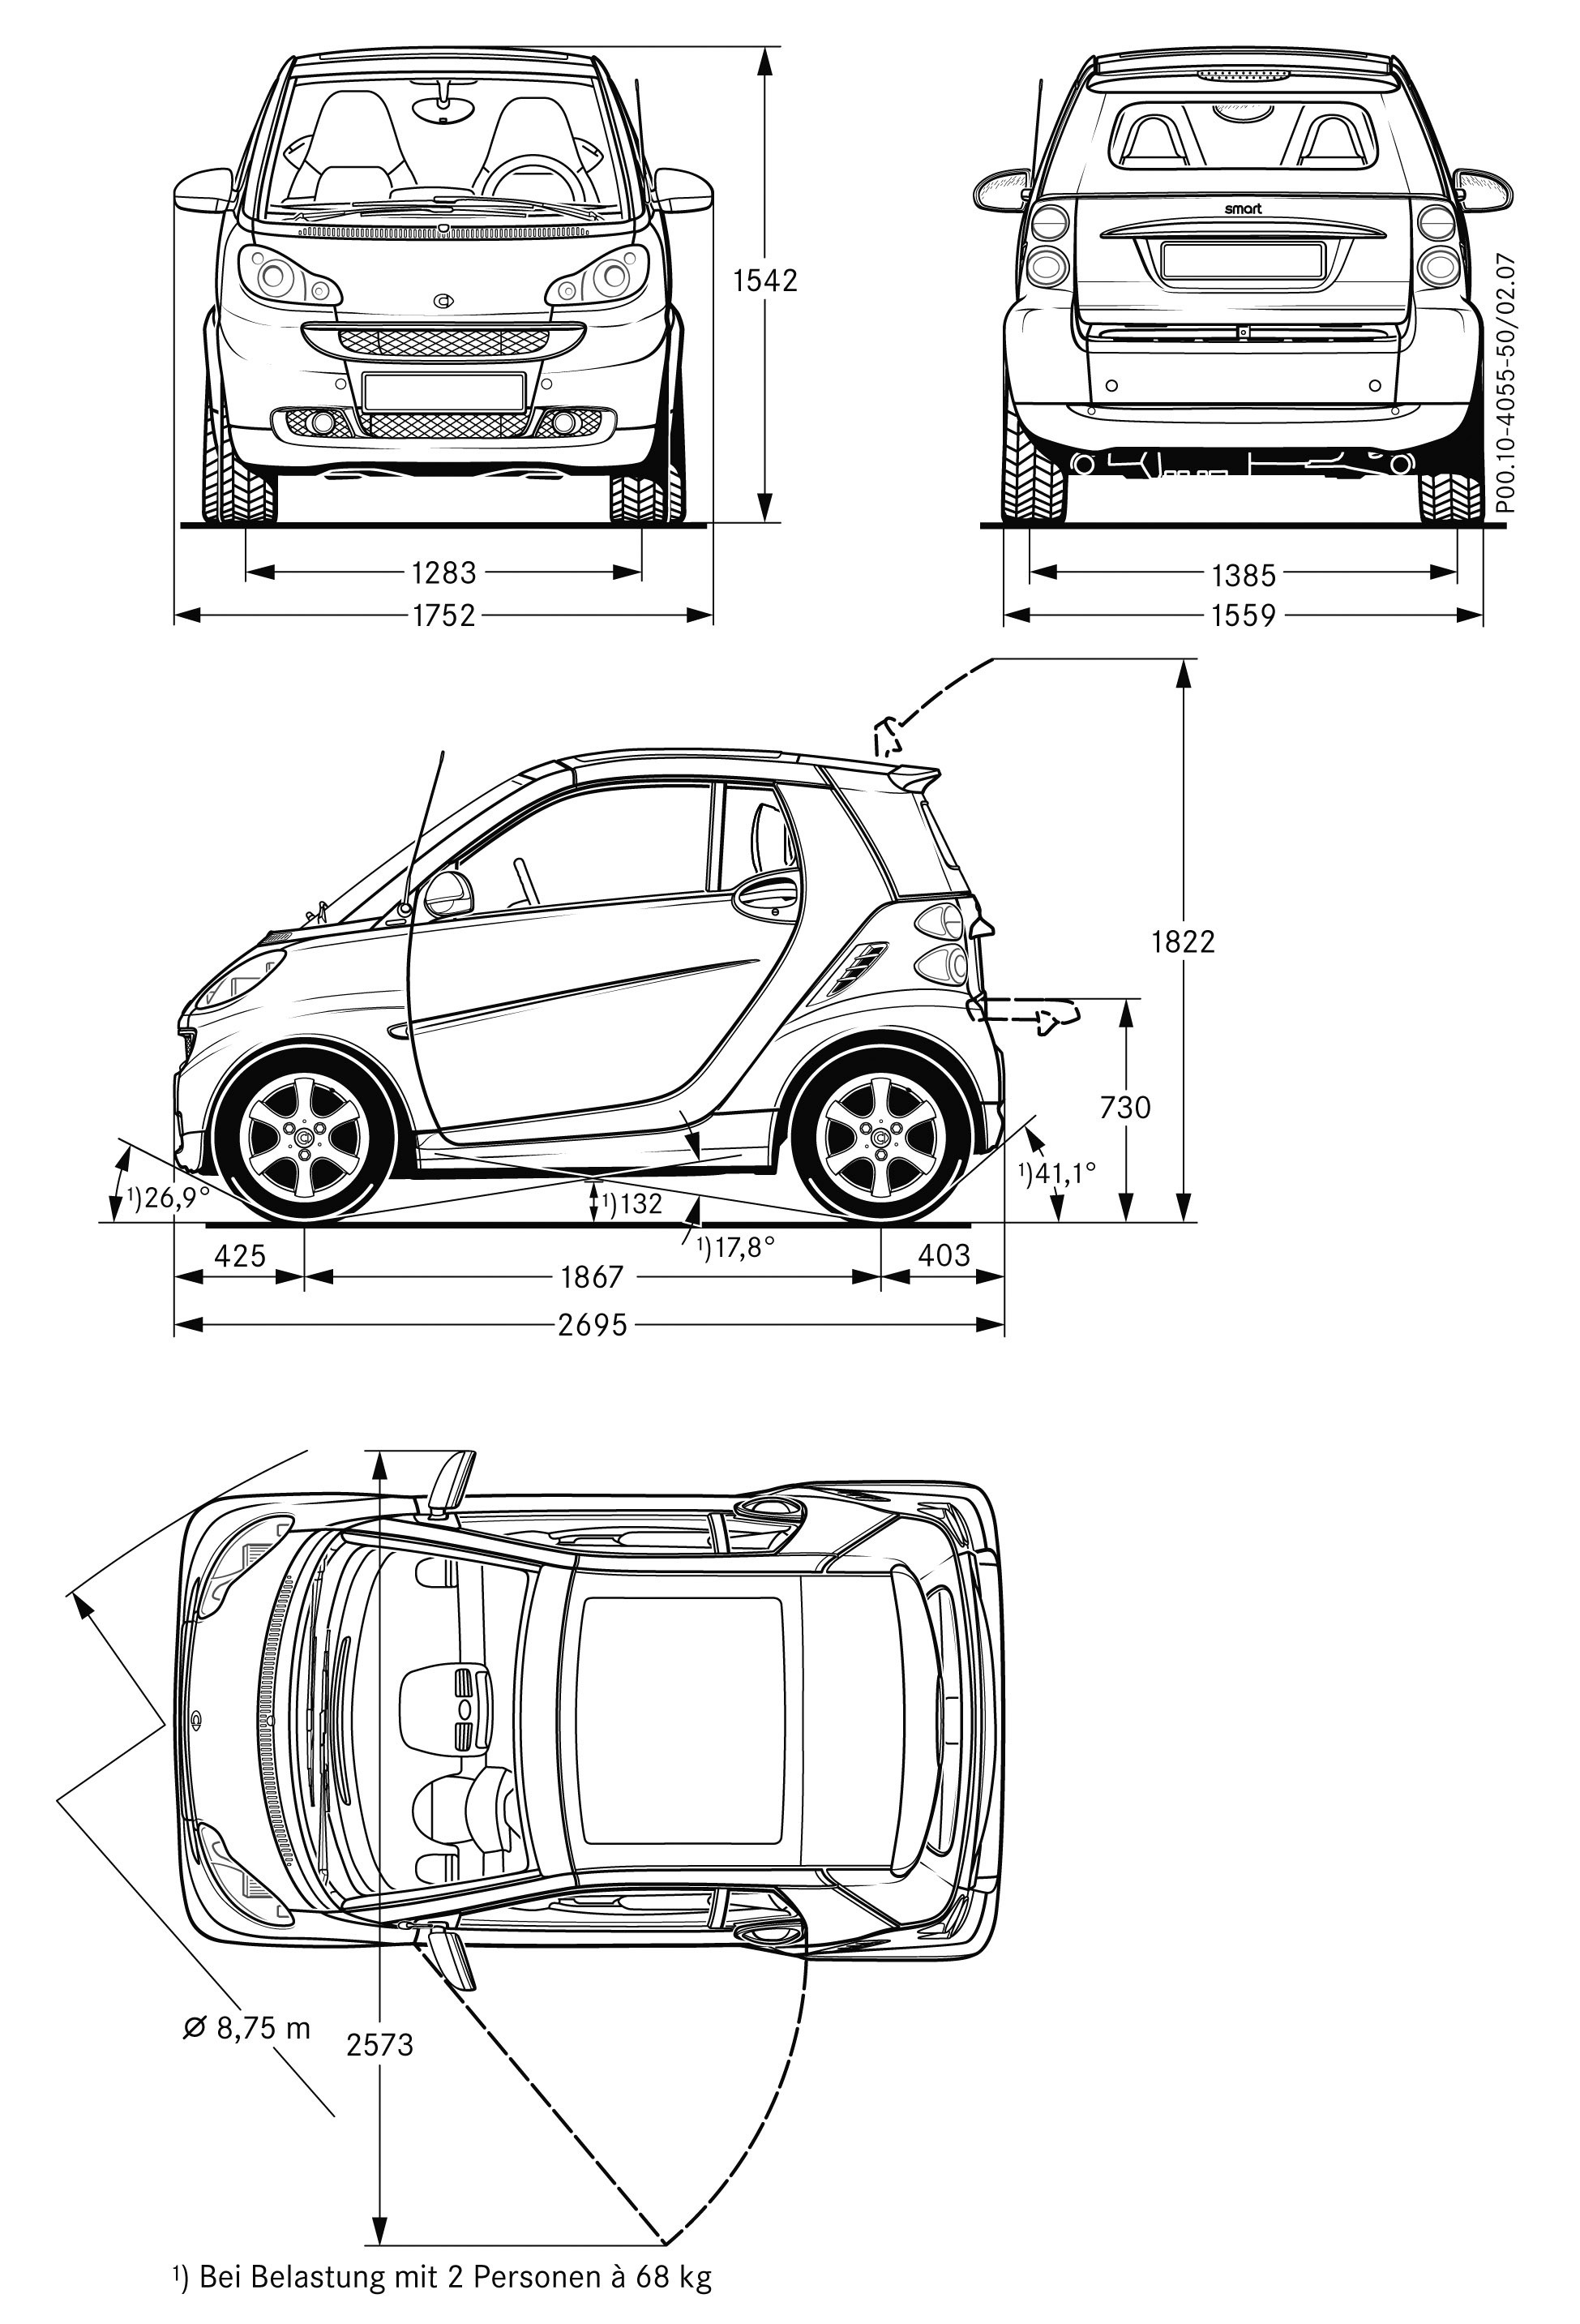 Smart fortwo cabrio  2014 as well Mini countryman  282014 29 as well Ideal bumper sticker for smart car or mini cooper 128953458160306782 together with Planning Tips besides Mini 2 Door  282015 29. on mini cars dimensions